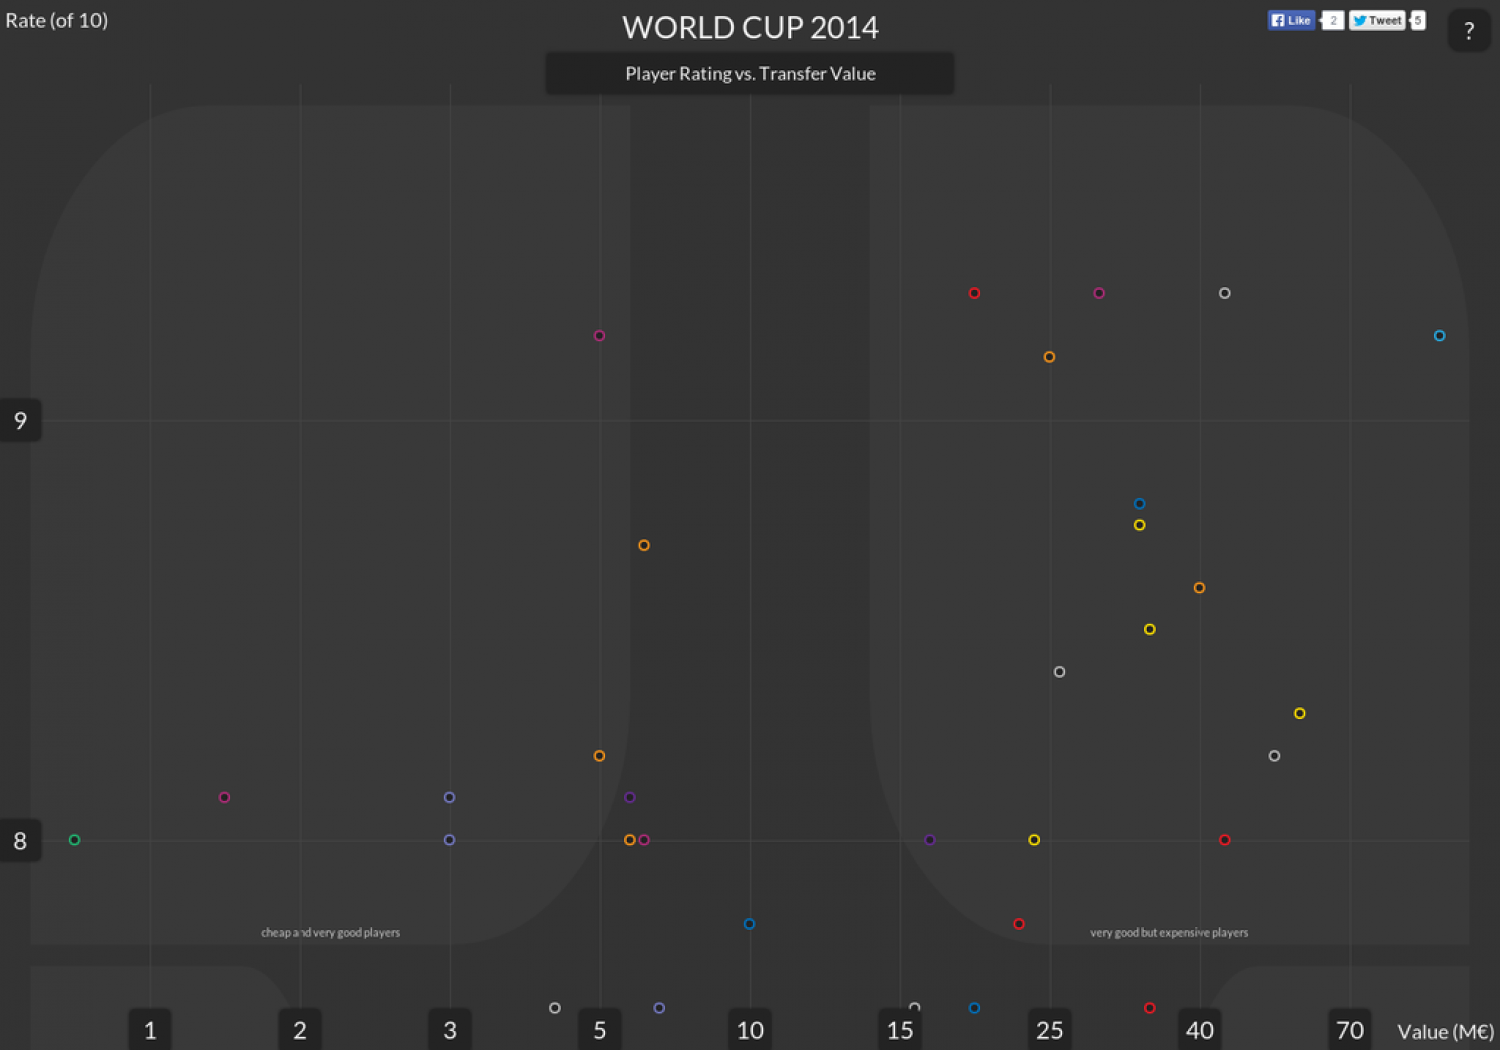 World Cup 2014 - Who is the Most Porfitable Player? Infographic